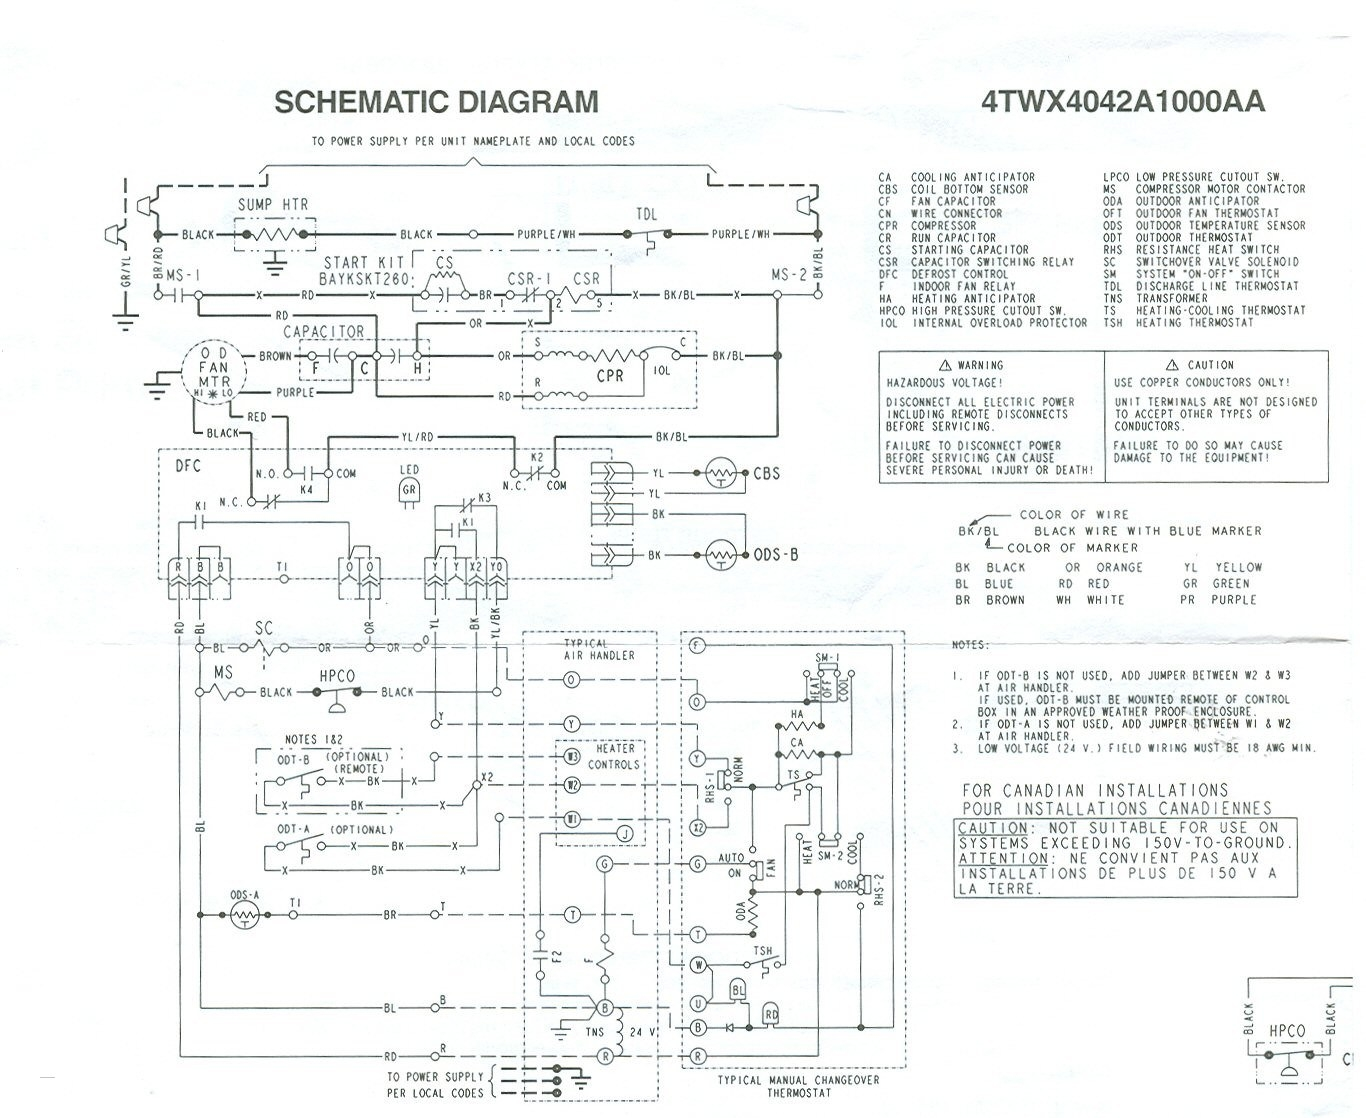 trane condenser wiring diagram Download-Circuit Diagram Program Free Download Fantastic Trane Wiring Diagrams Model Twe Sketch Diagram Wiring 7-s